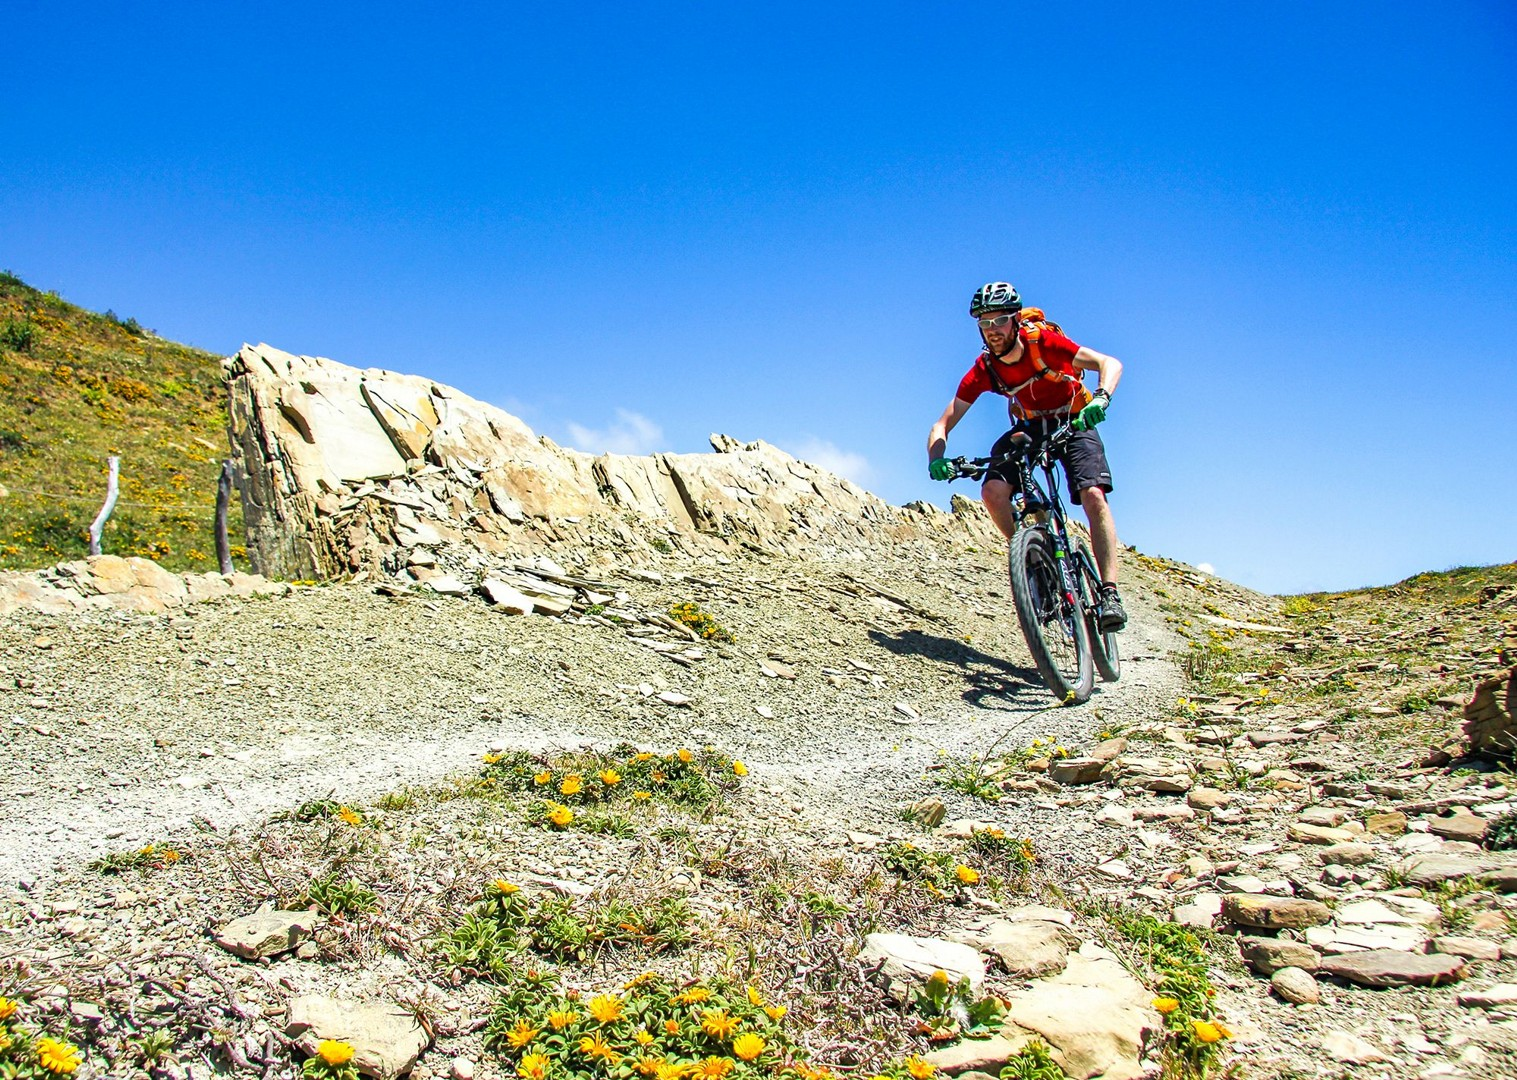 trans-andaluz-guided-mountain-bike-holiday-skedaddle-spain.jpg - Spain - Trans Andaluz - Guided Mountain Bike Holiday - Mountain Biking